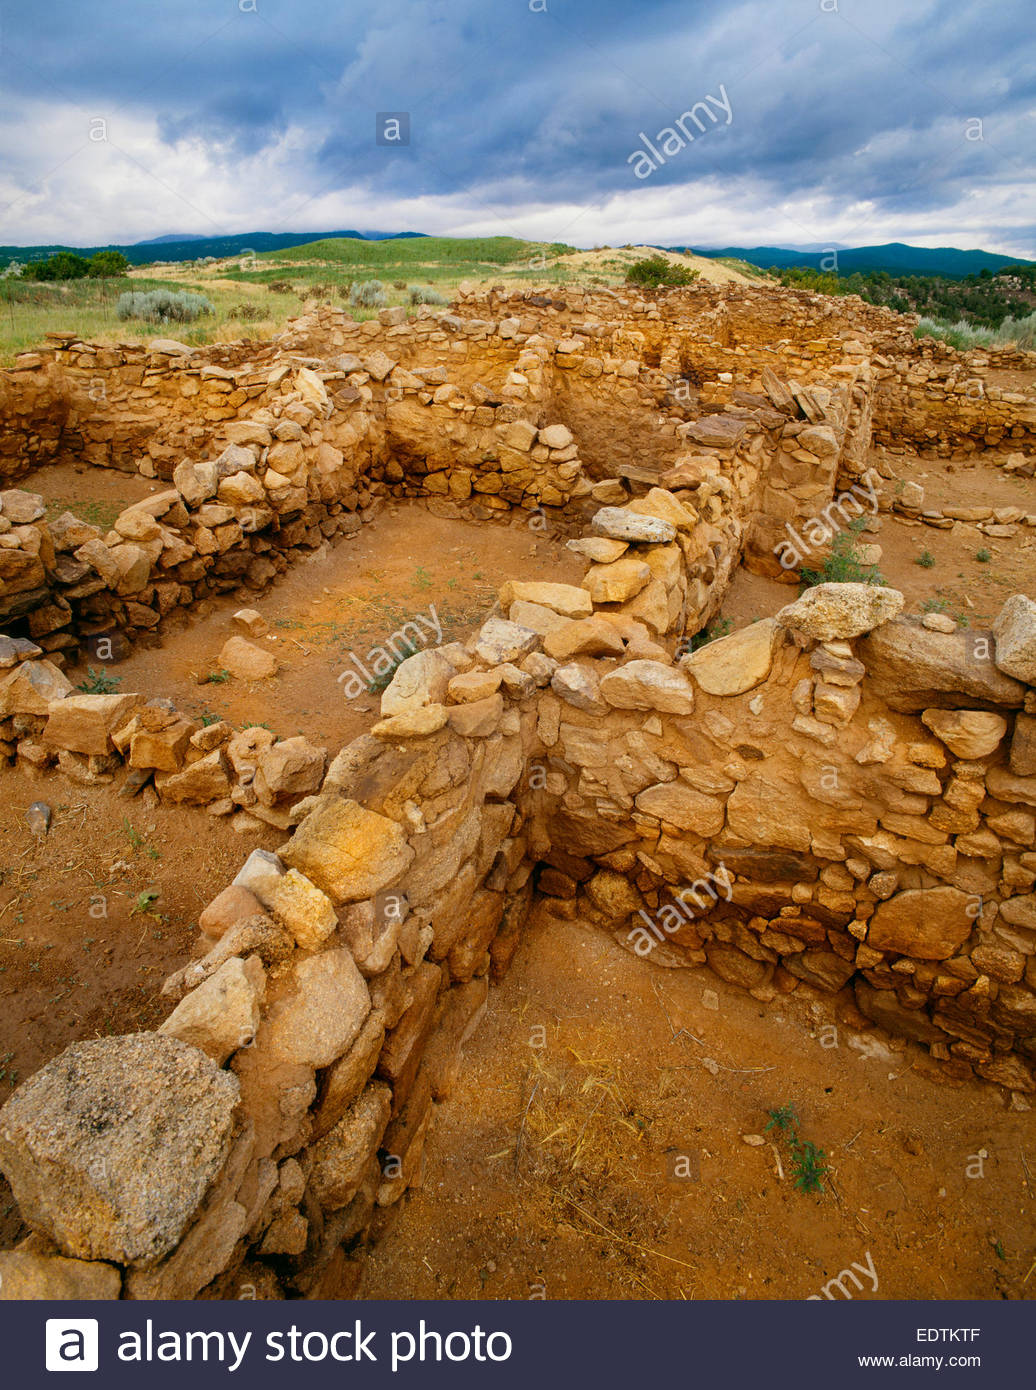 Ruins of Pecos Pueblo, Pecos National Historical Park, New Mexico. - Stock Image